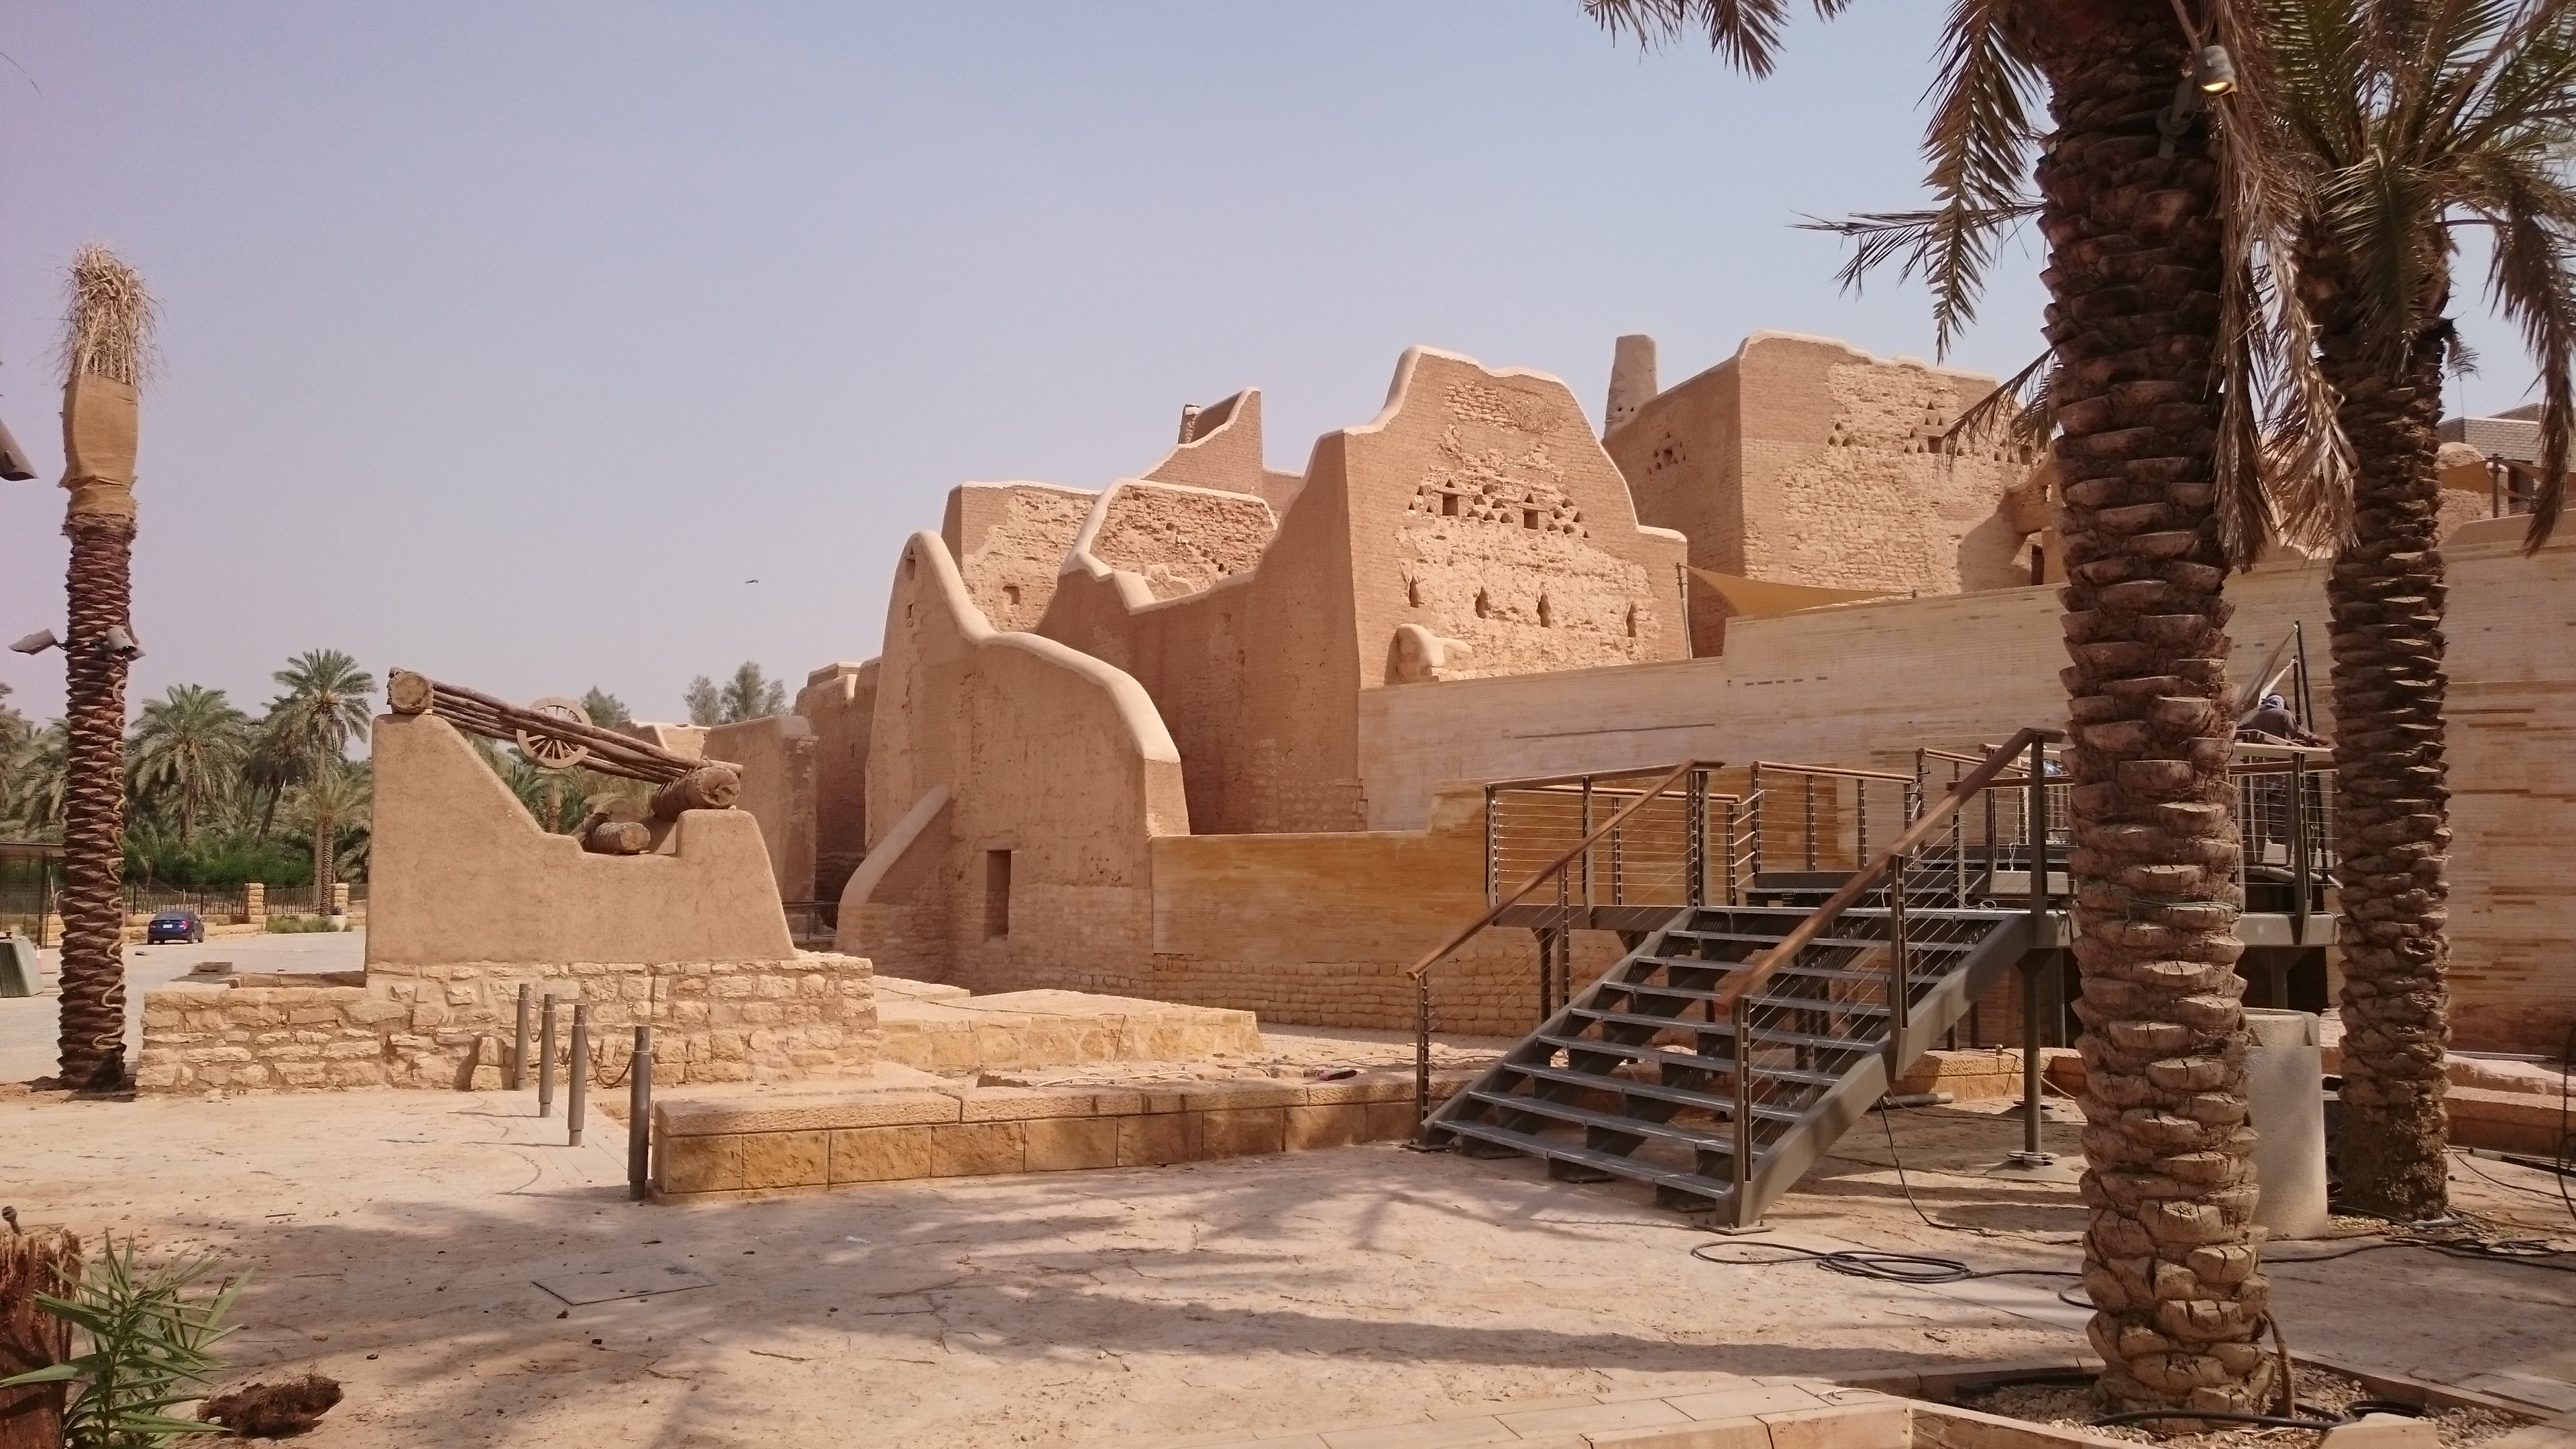 The Salwa Palace at Historical Addiriyah has been preserved rather than restored